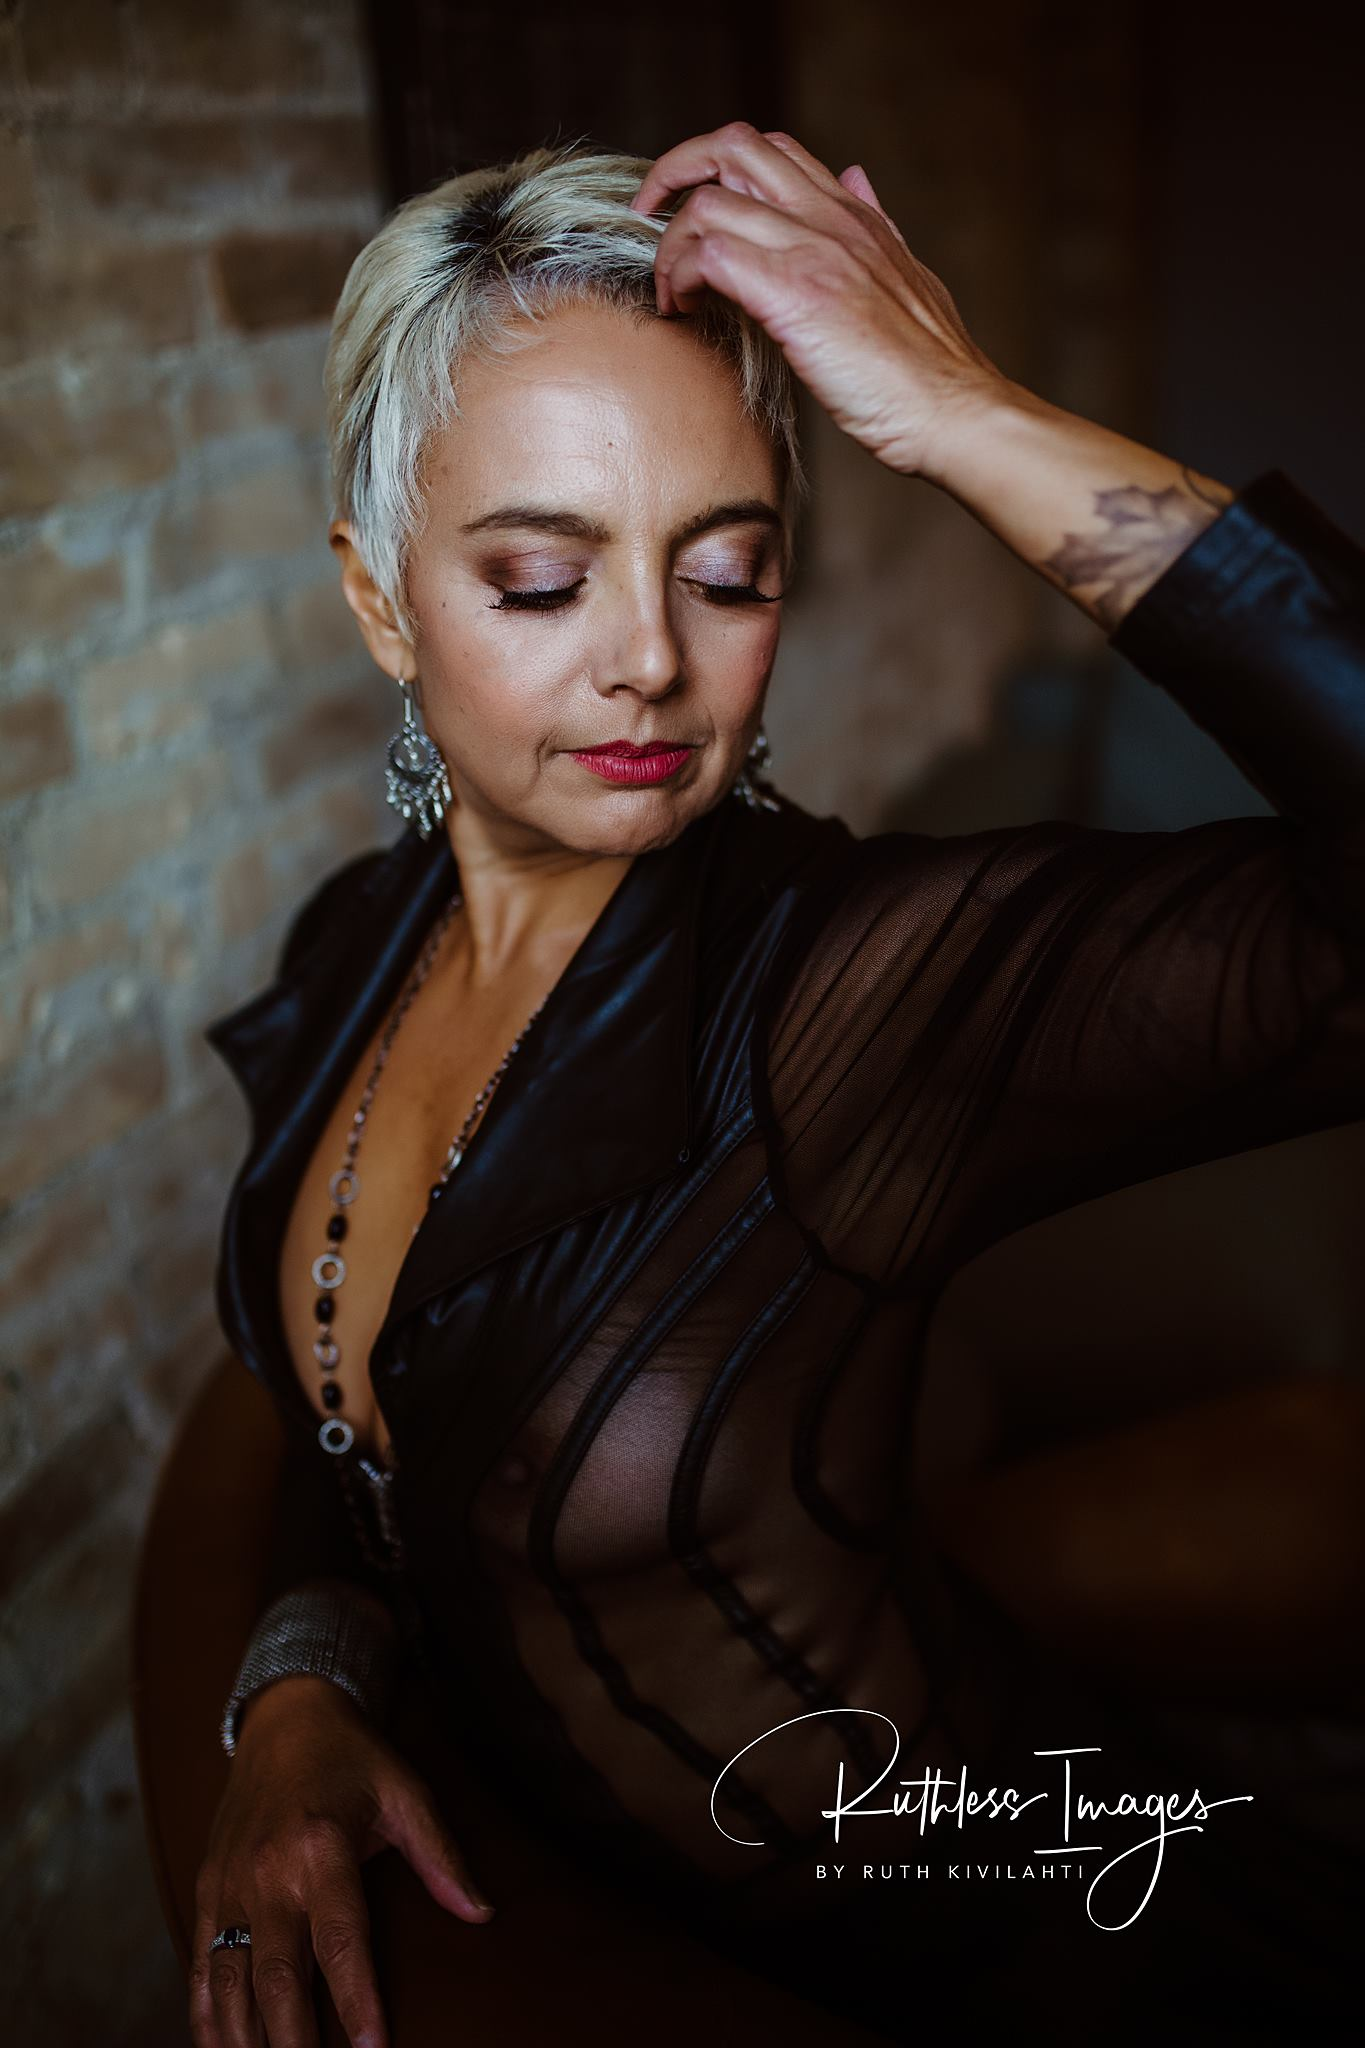 Image description: Tracy standing, looking downward, one hand brushing against the front of her short hair, with lipstick and eye shadow and really long eyelashes, dangling earrings, a long necklace, and a black long sleeved top with sheer bits and a plunging neckline. Exposed brick background.